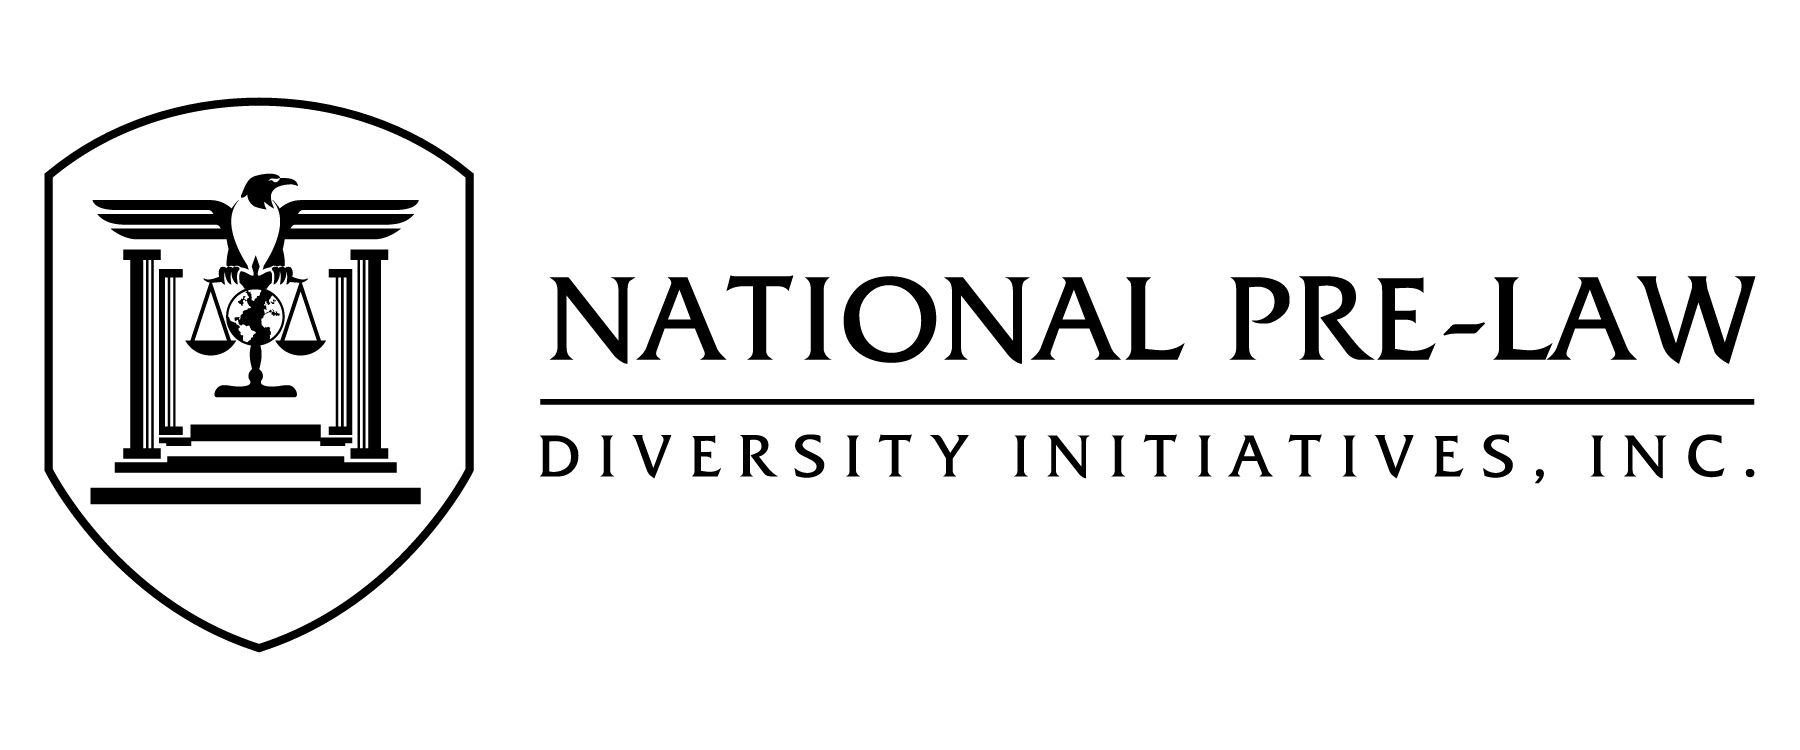 National Pre-Law Diversity Initiatives, Inc.